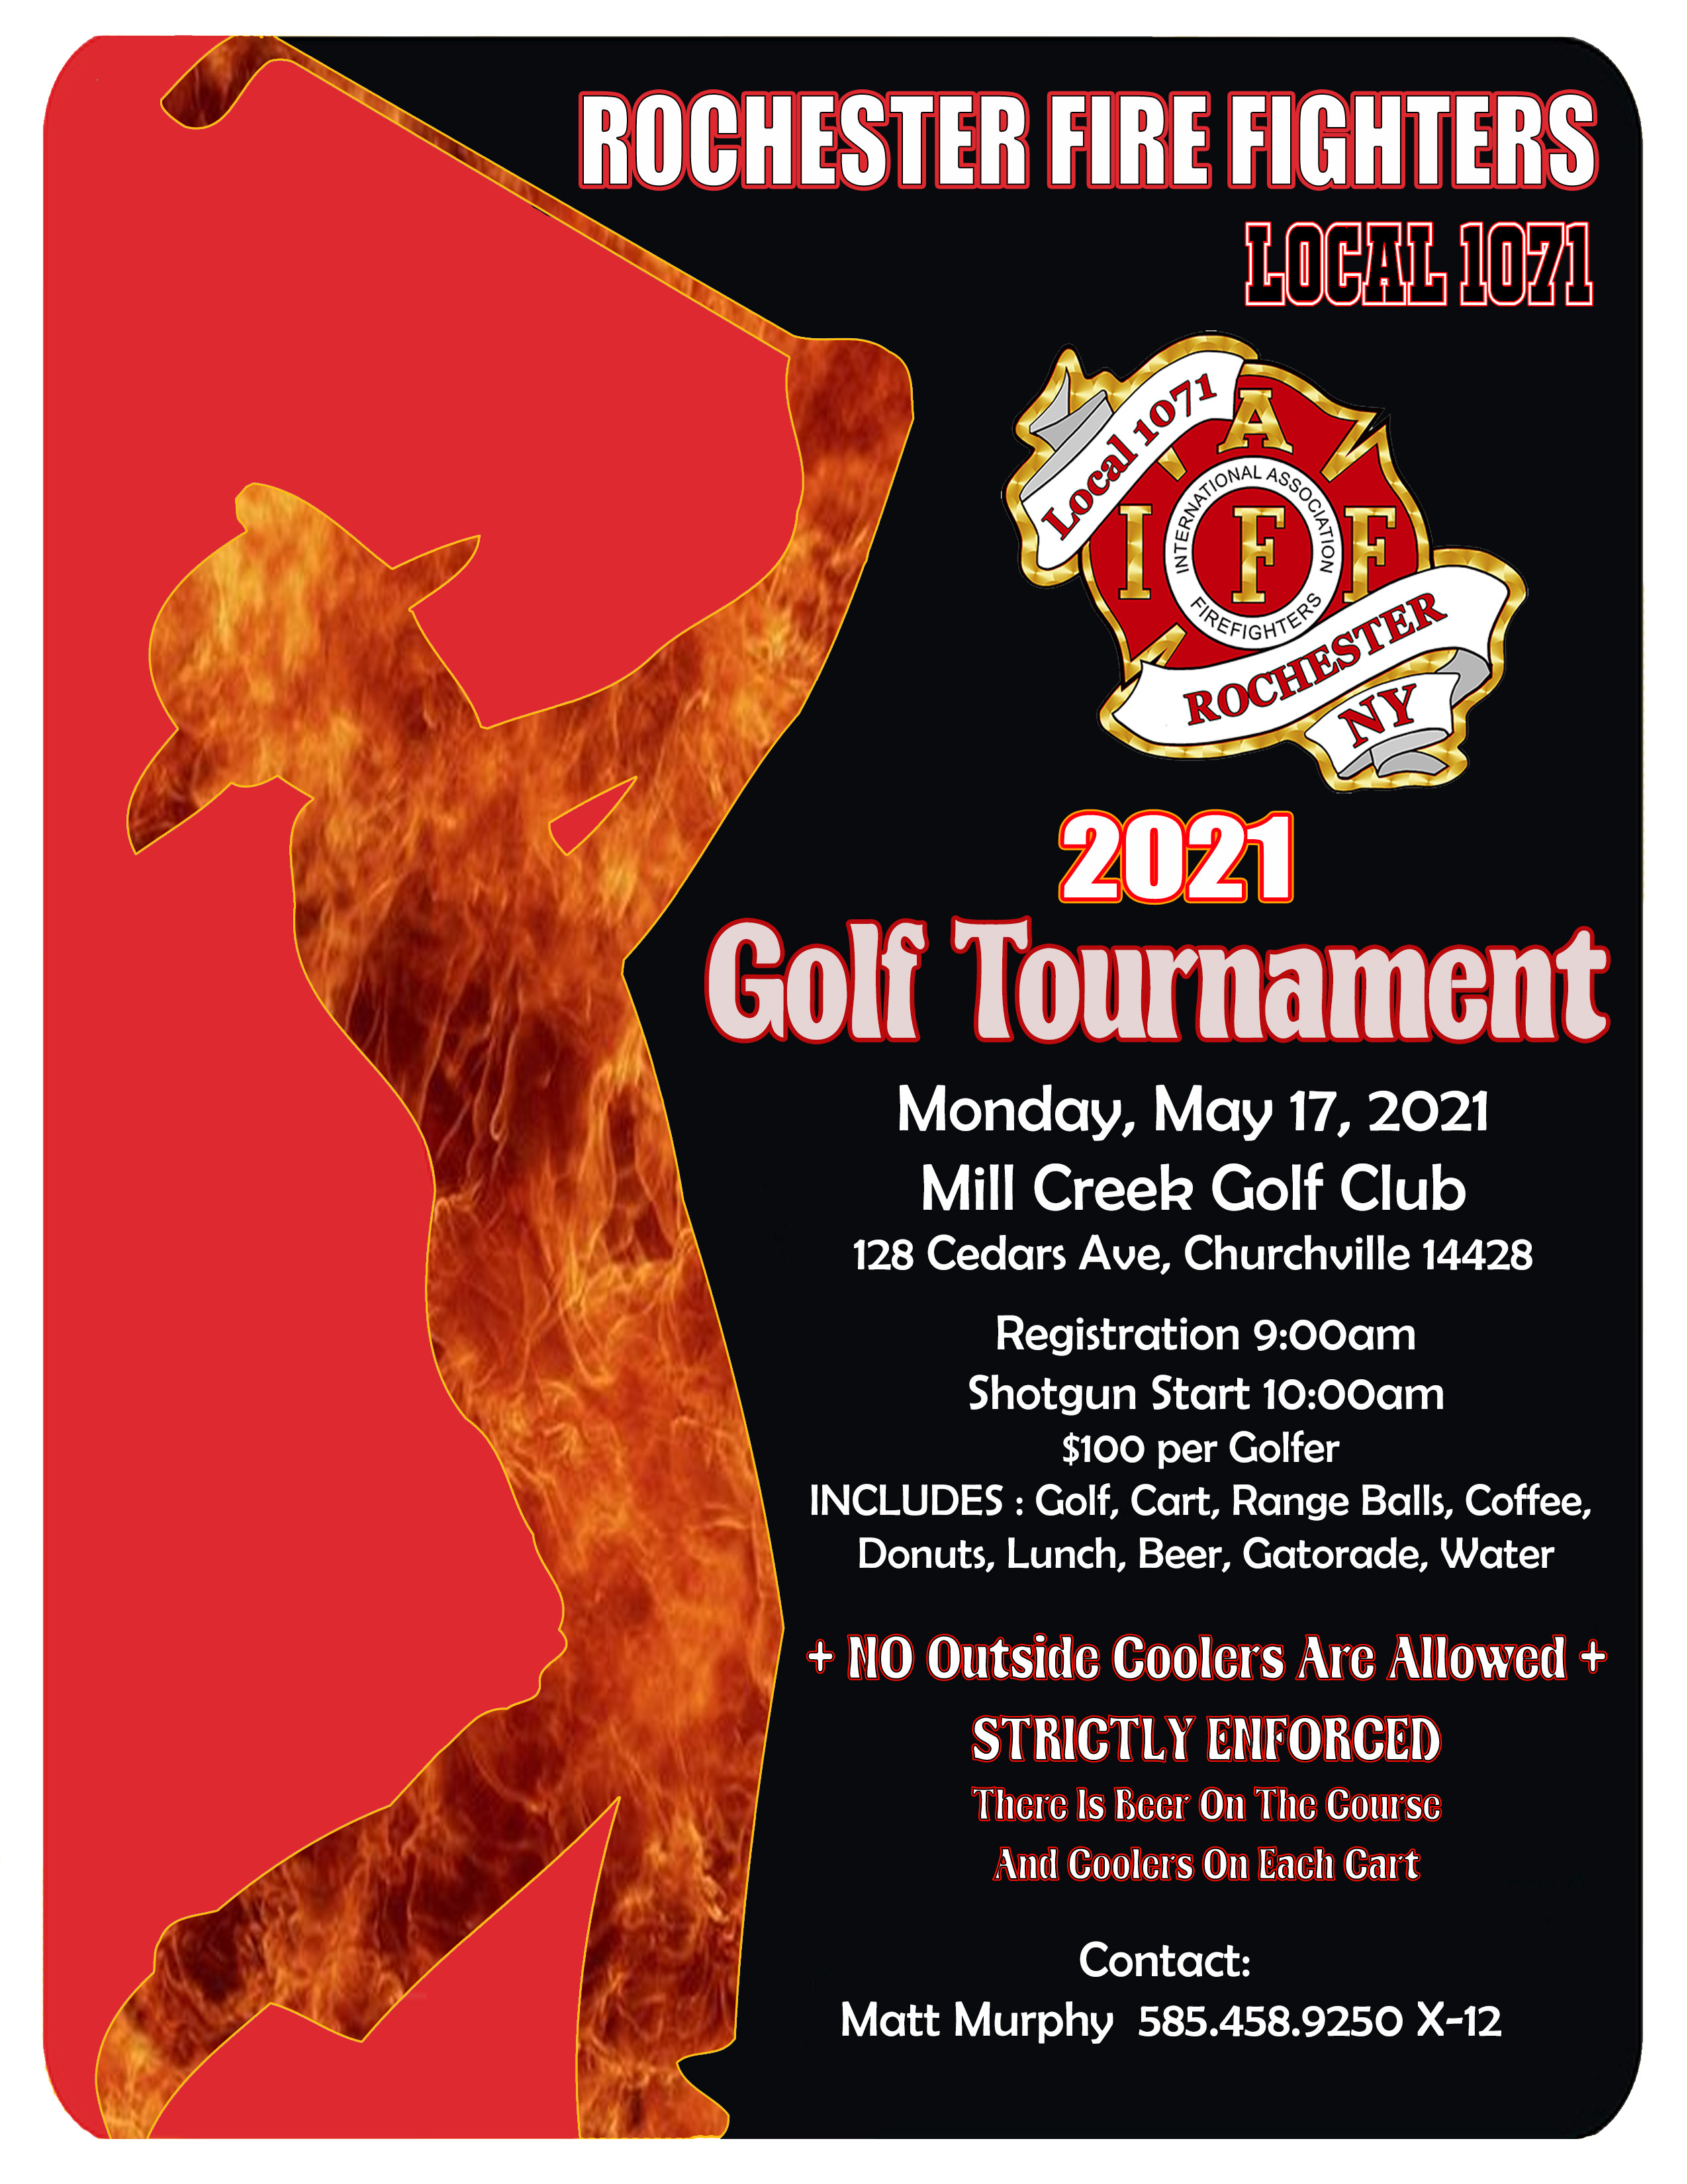 2021 Golf Tournament